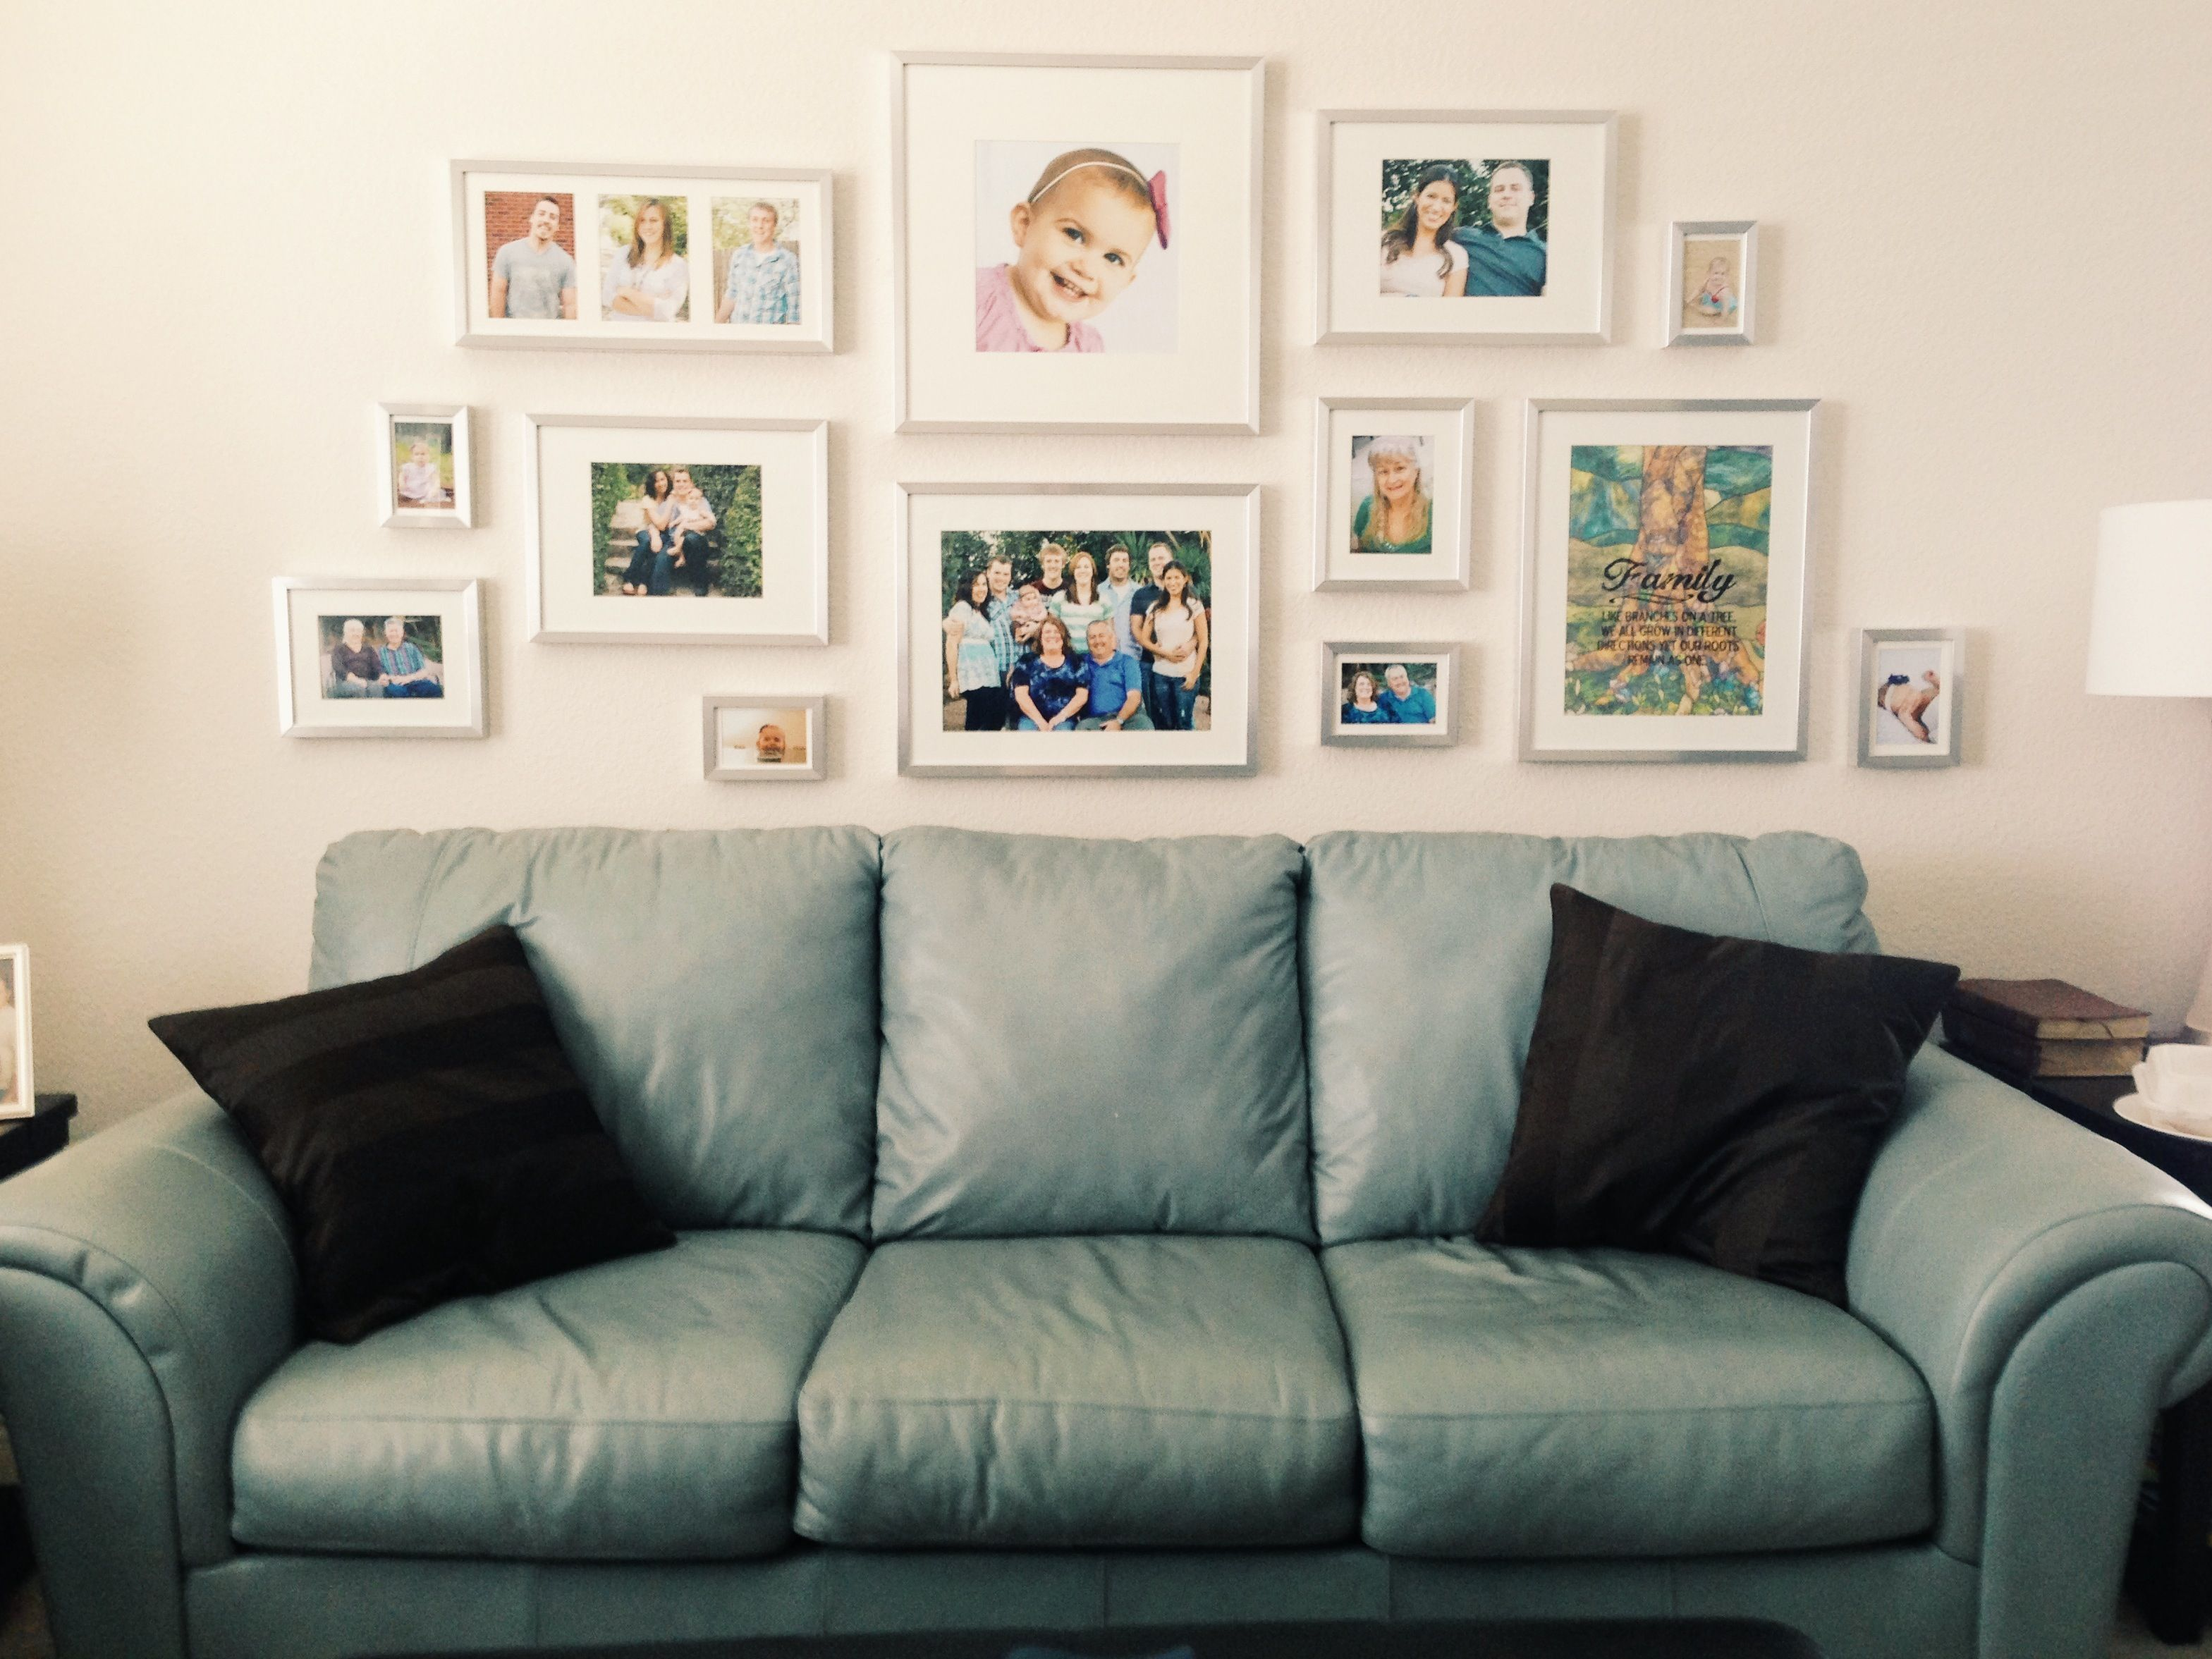 Ikea frame collage. | Realistic Bedroom Ideas | Pinterest ...